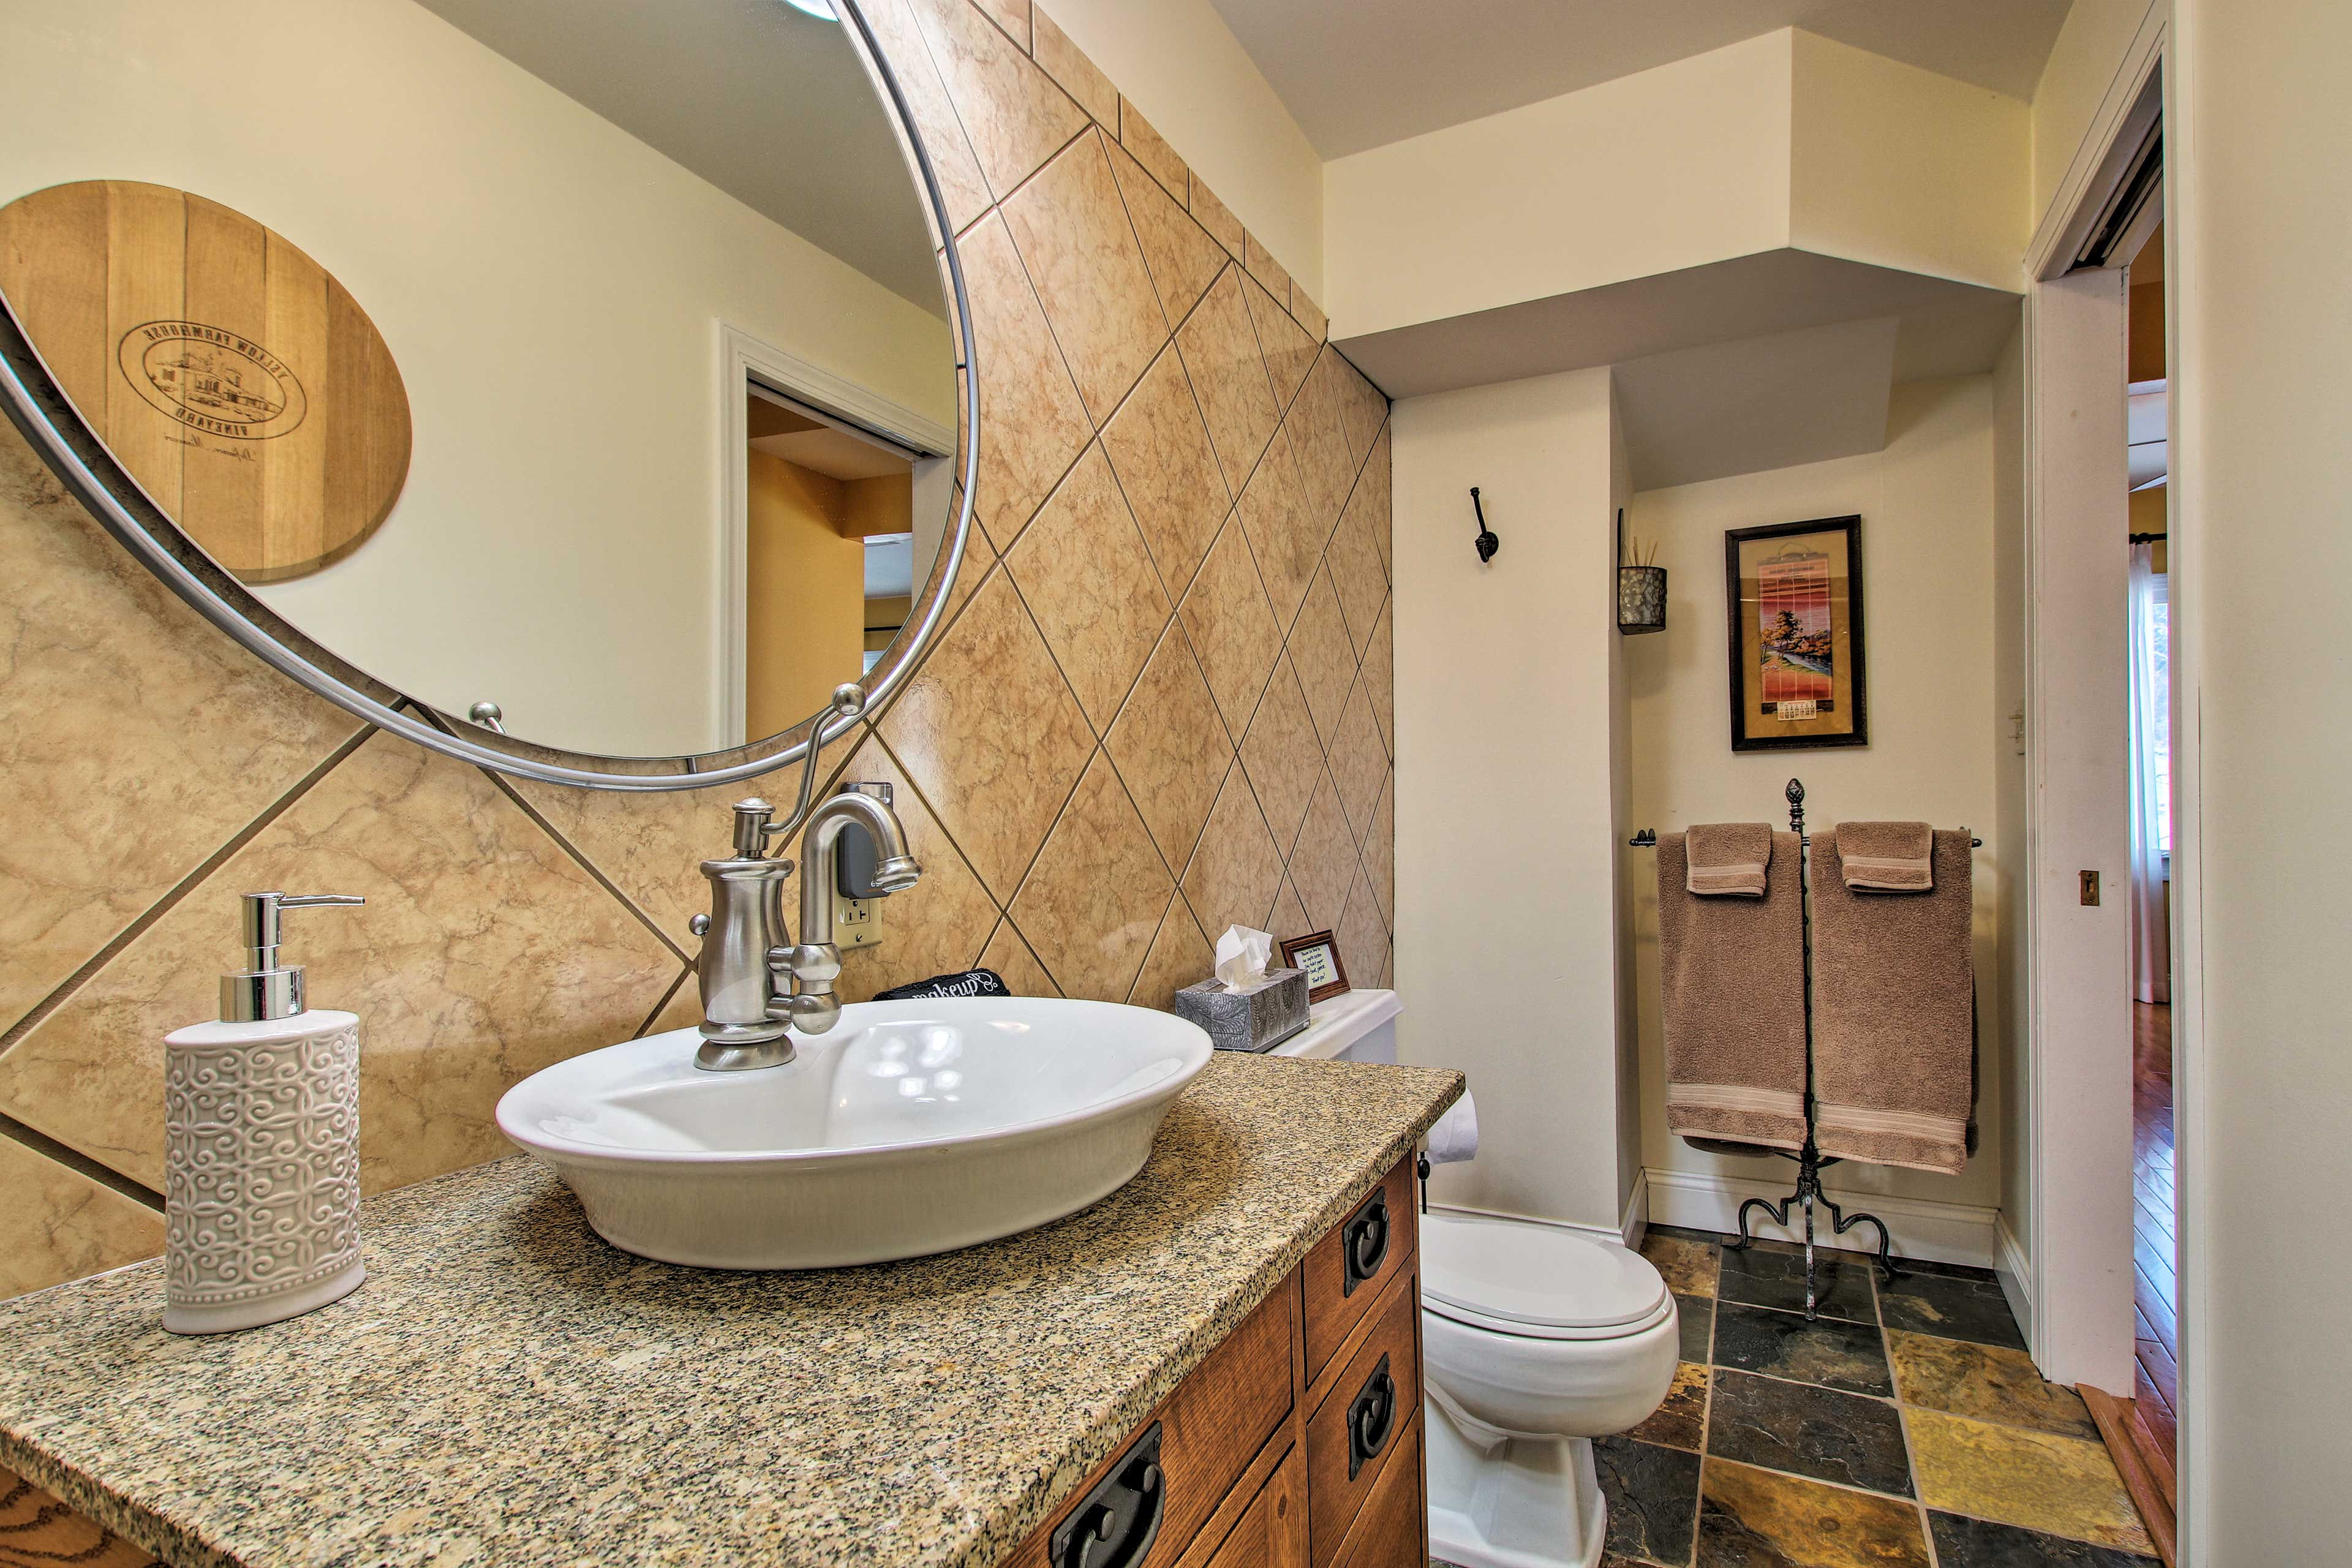 The 2 full bathrooms are stocked with complimentary toiletries & towels.